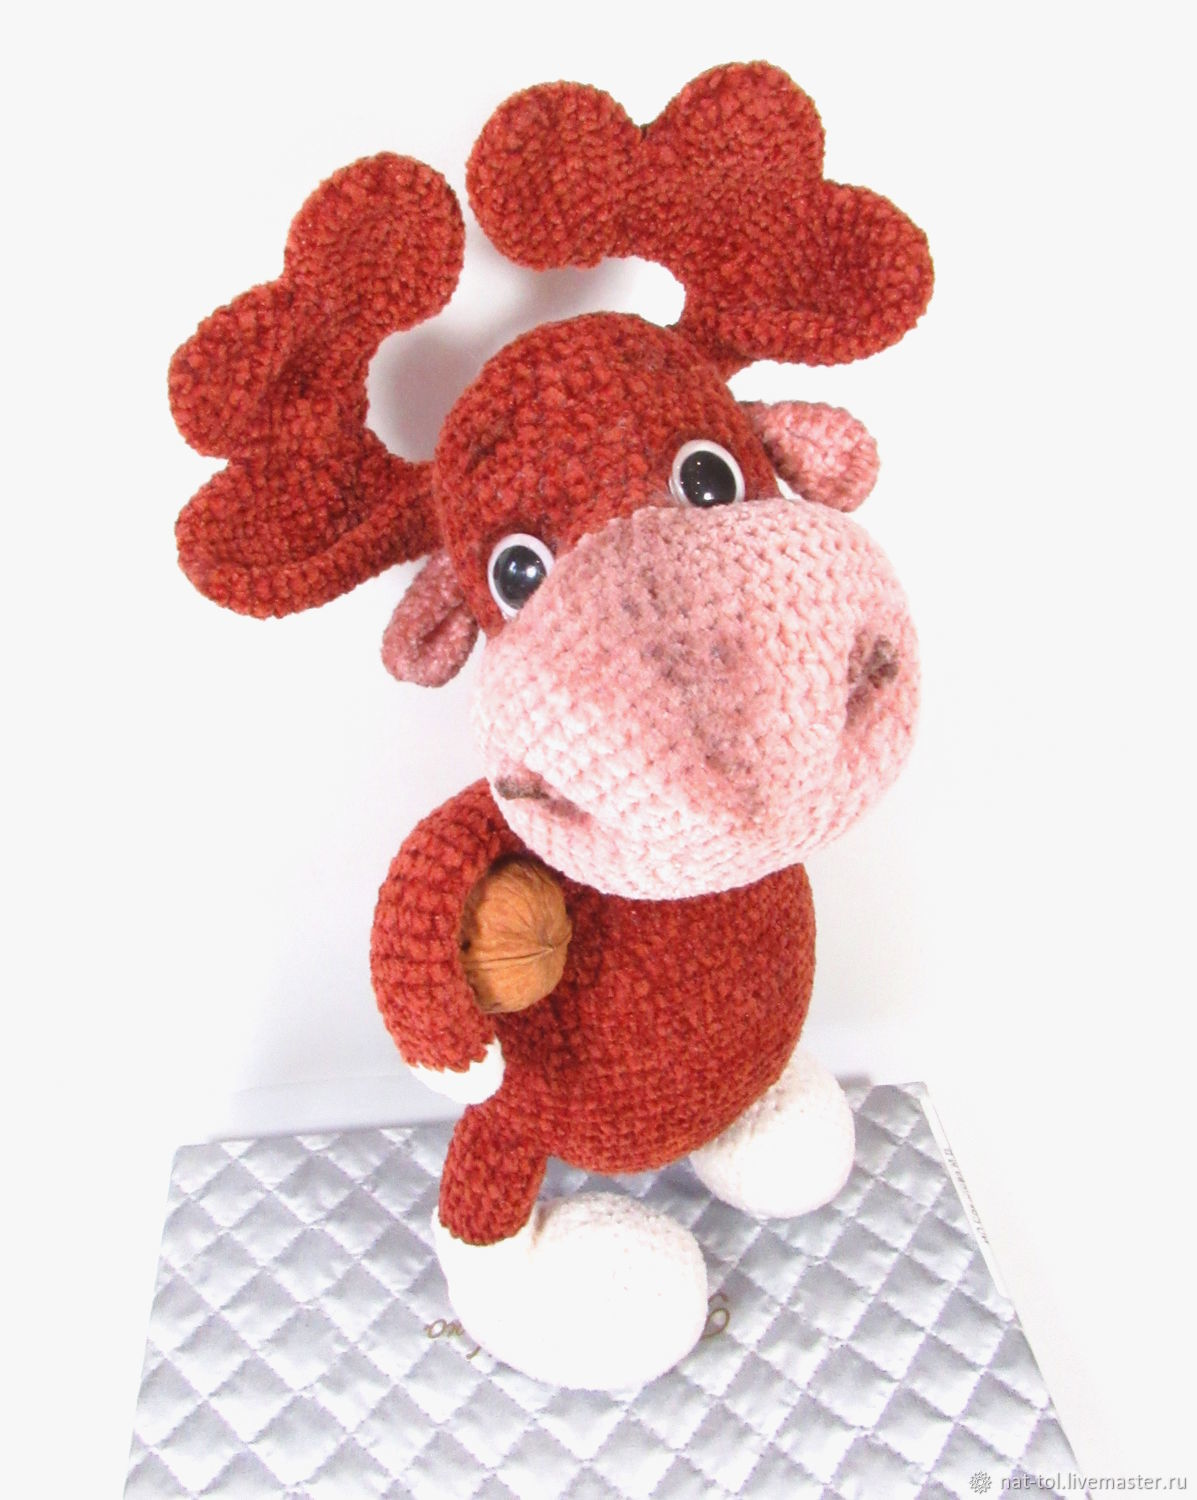 Soft toys: Crocheted elk deer velour joy to the child, Stuffed Toys, Electrogorsk,  Фото №1